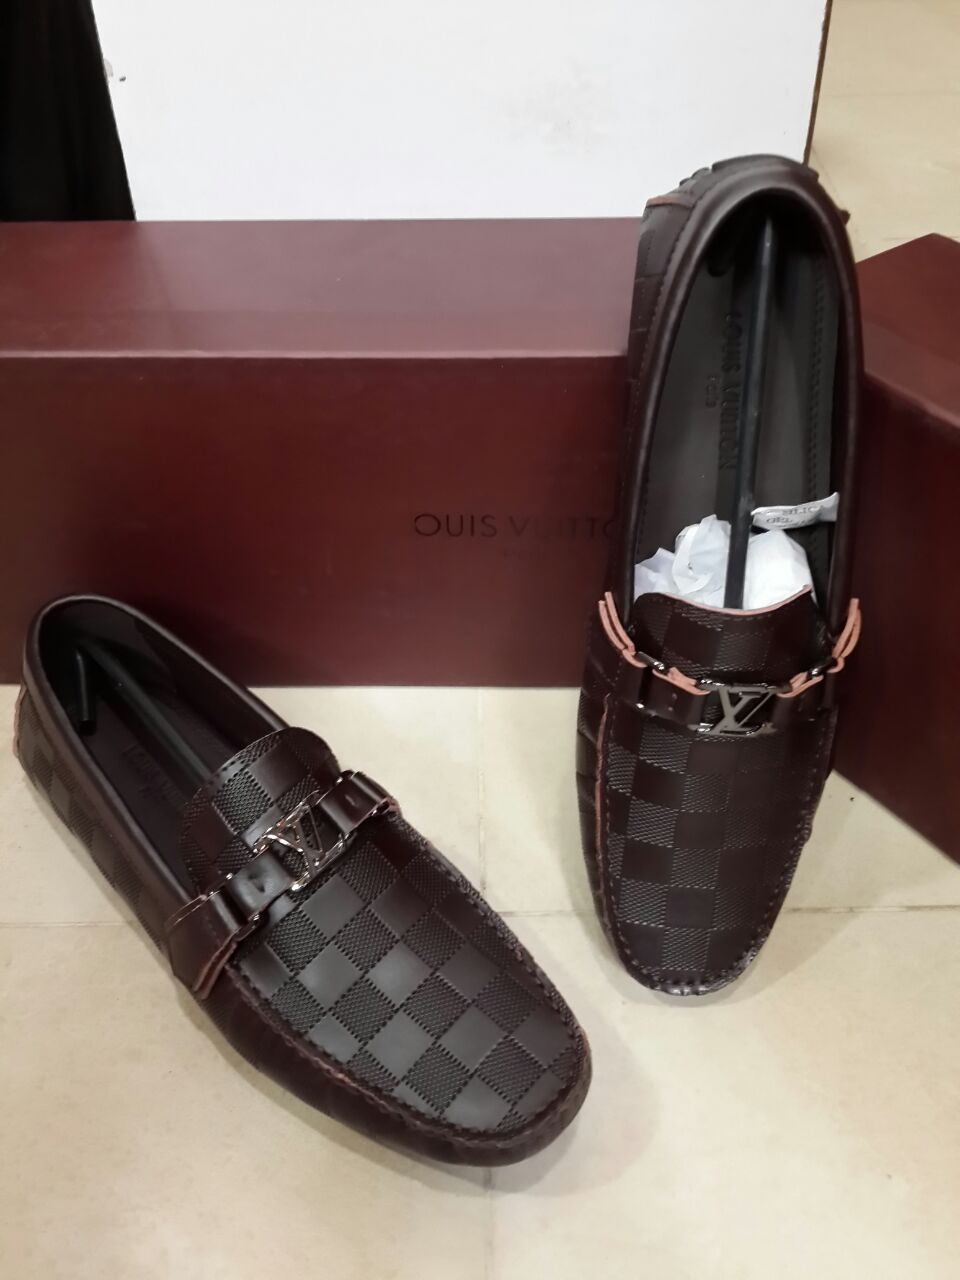 16a0655f493c Louis Vuitton Shoes Sale India ✓ Shoes Collections